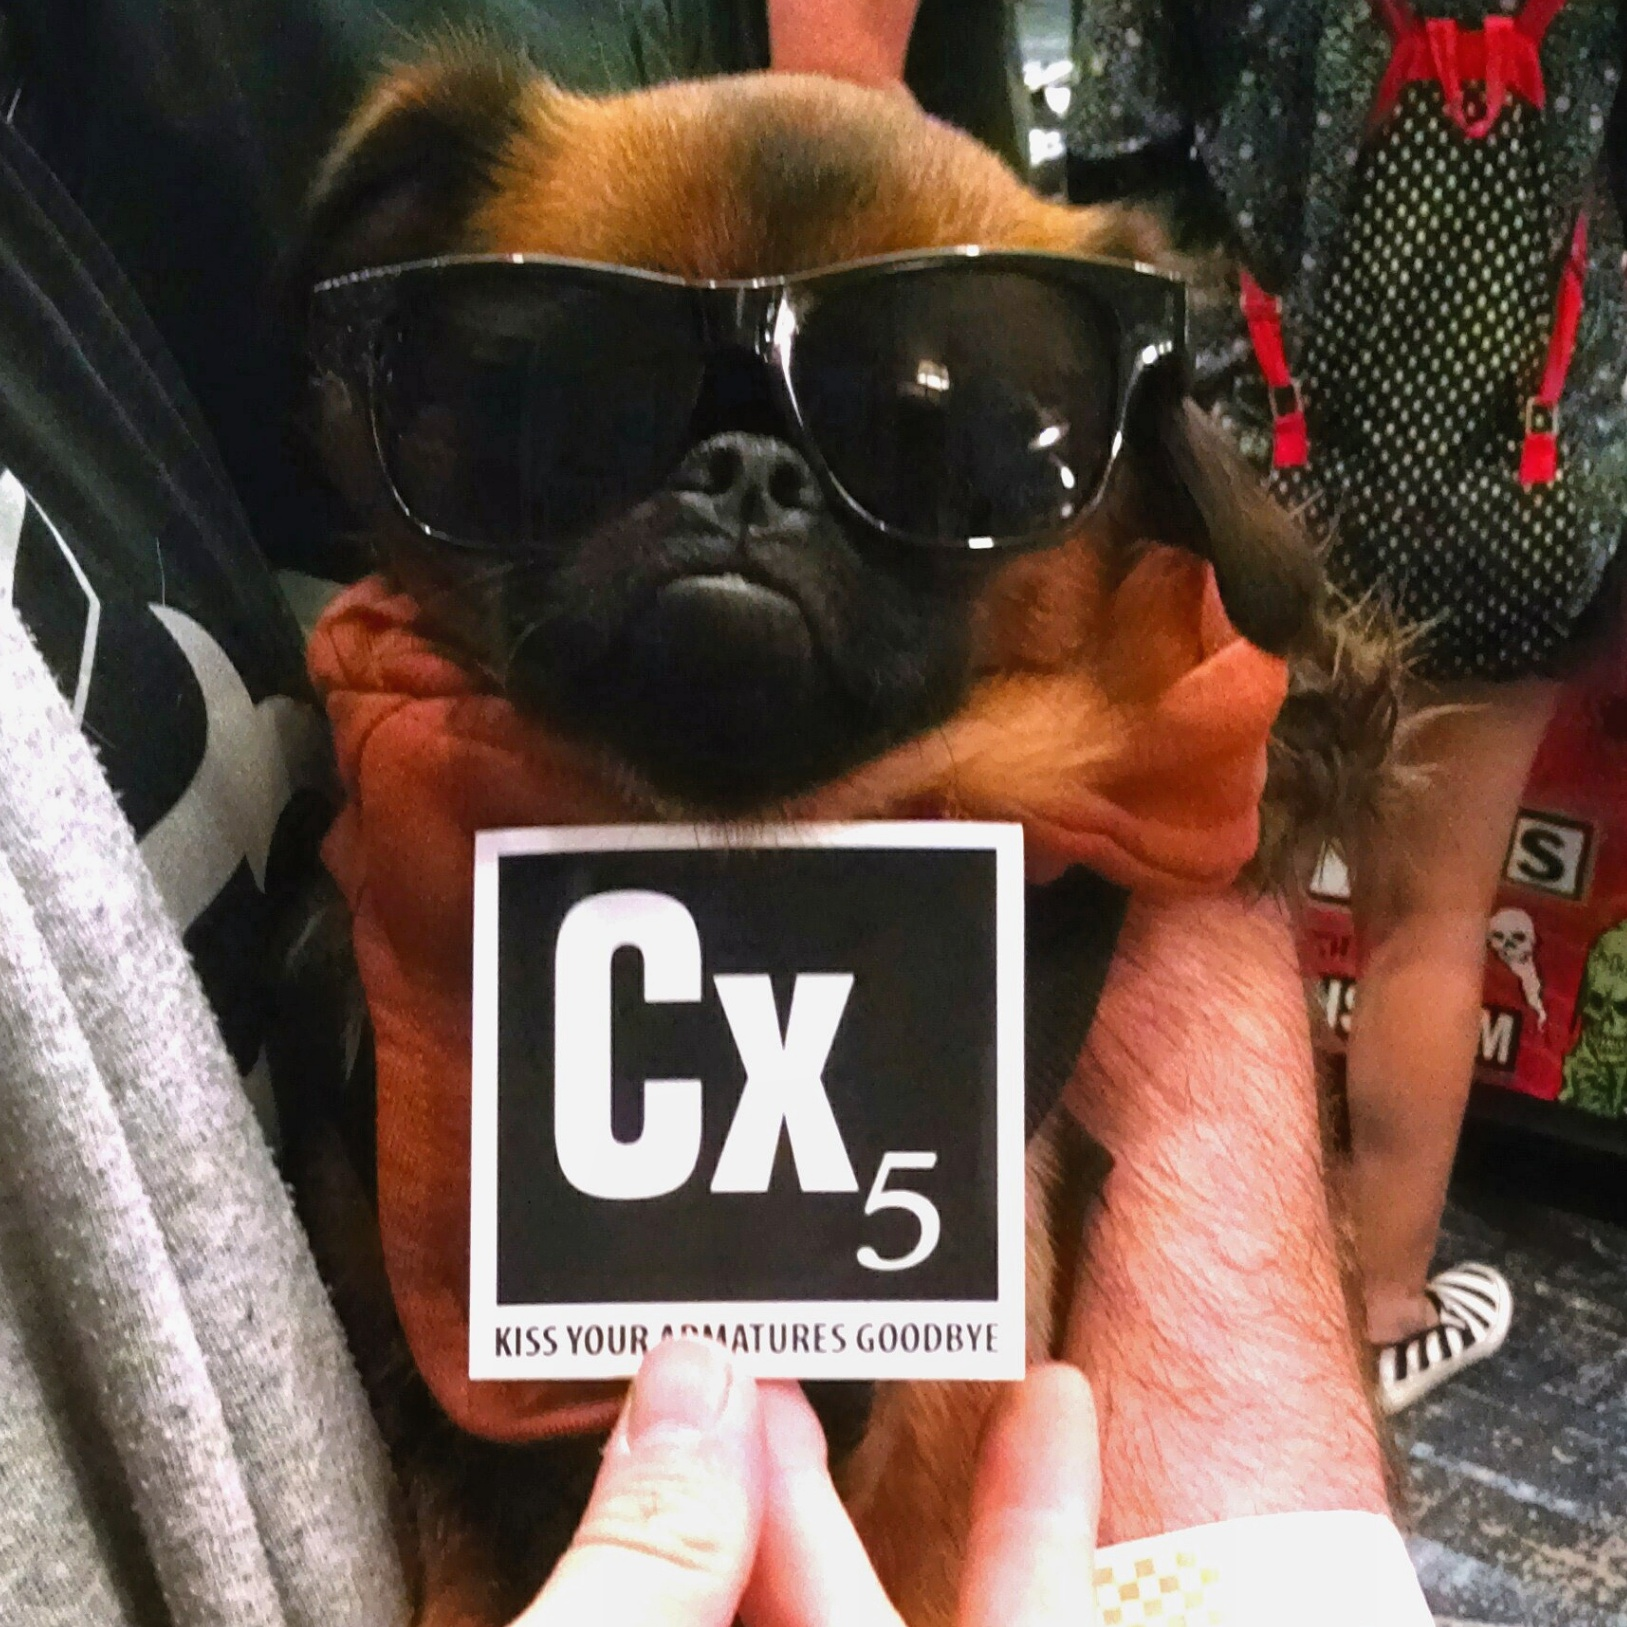 Chamaco really digs Cx5